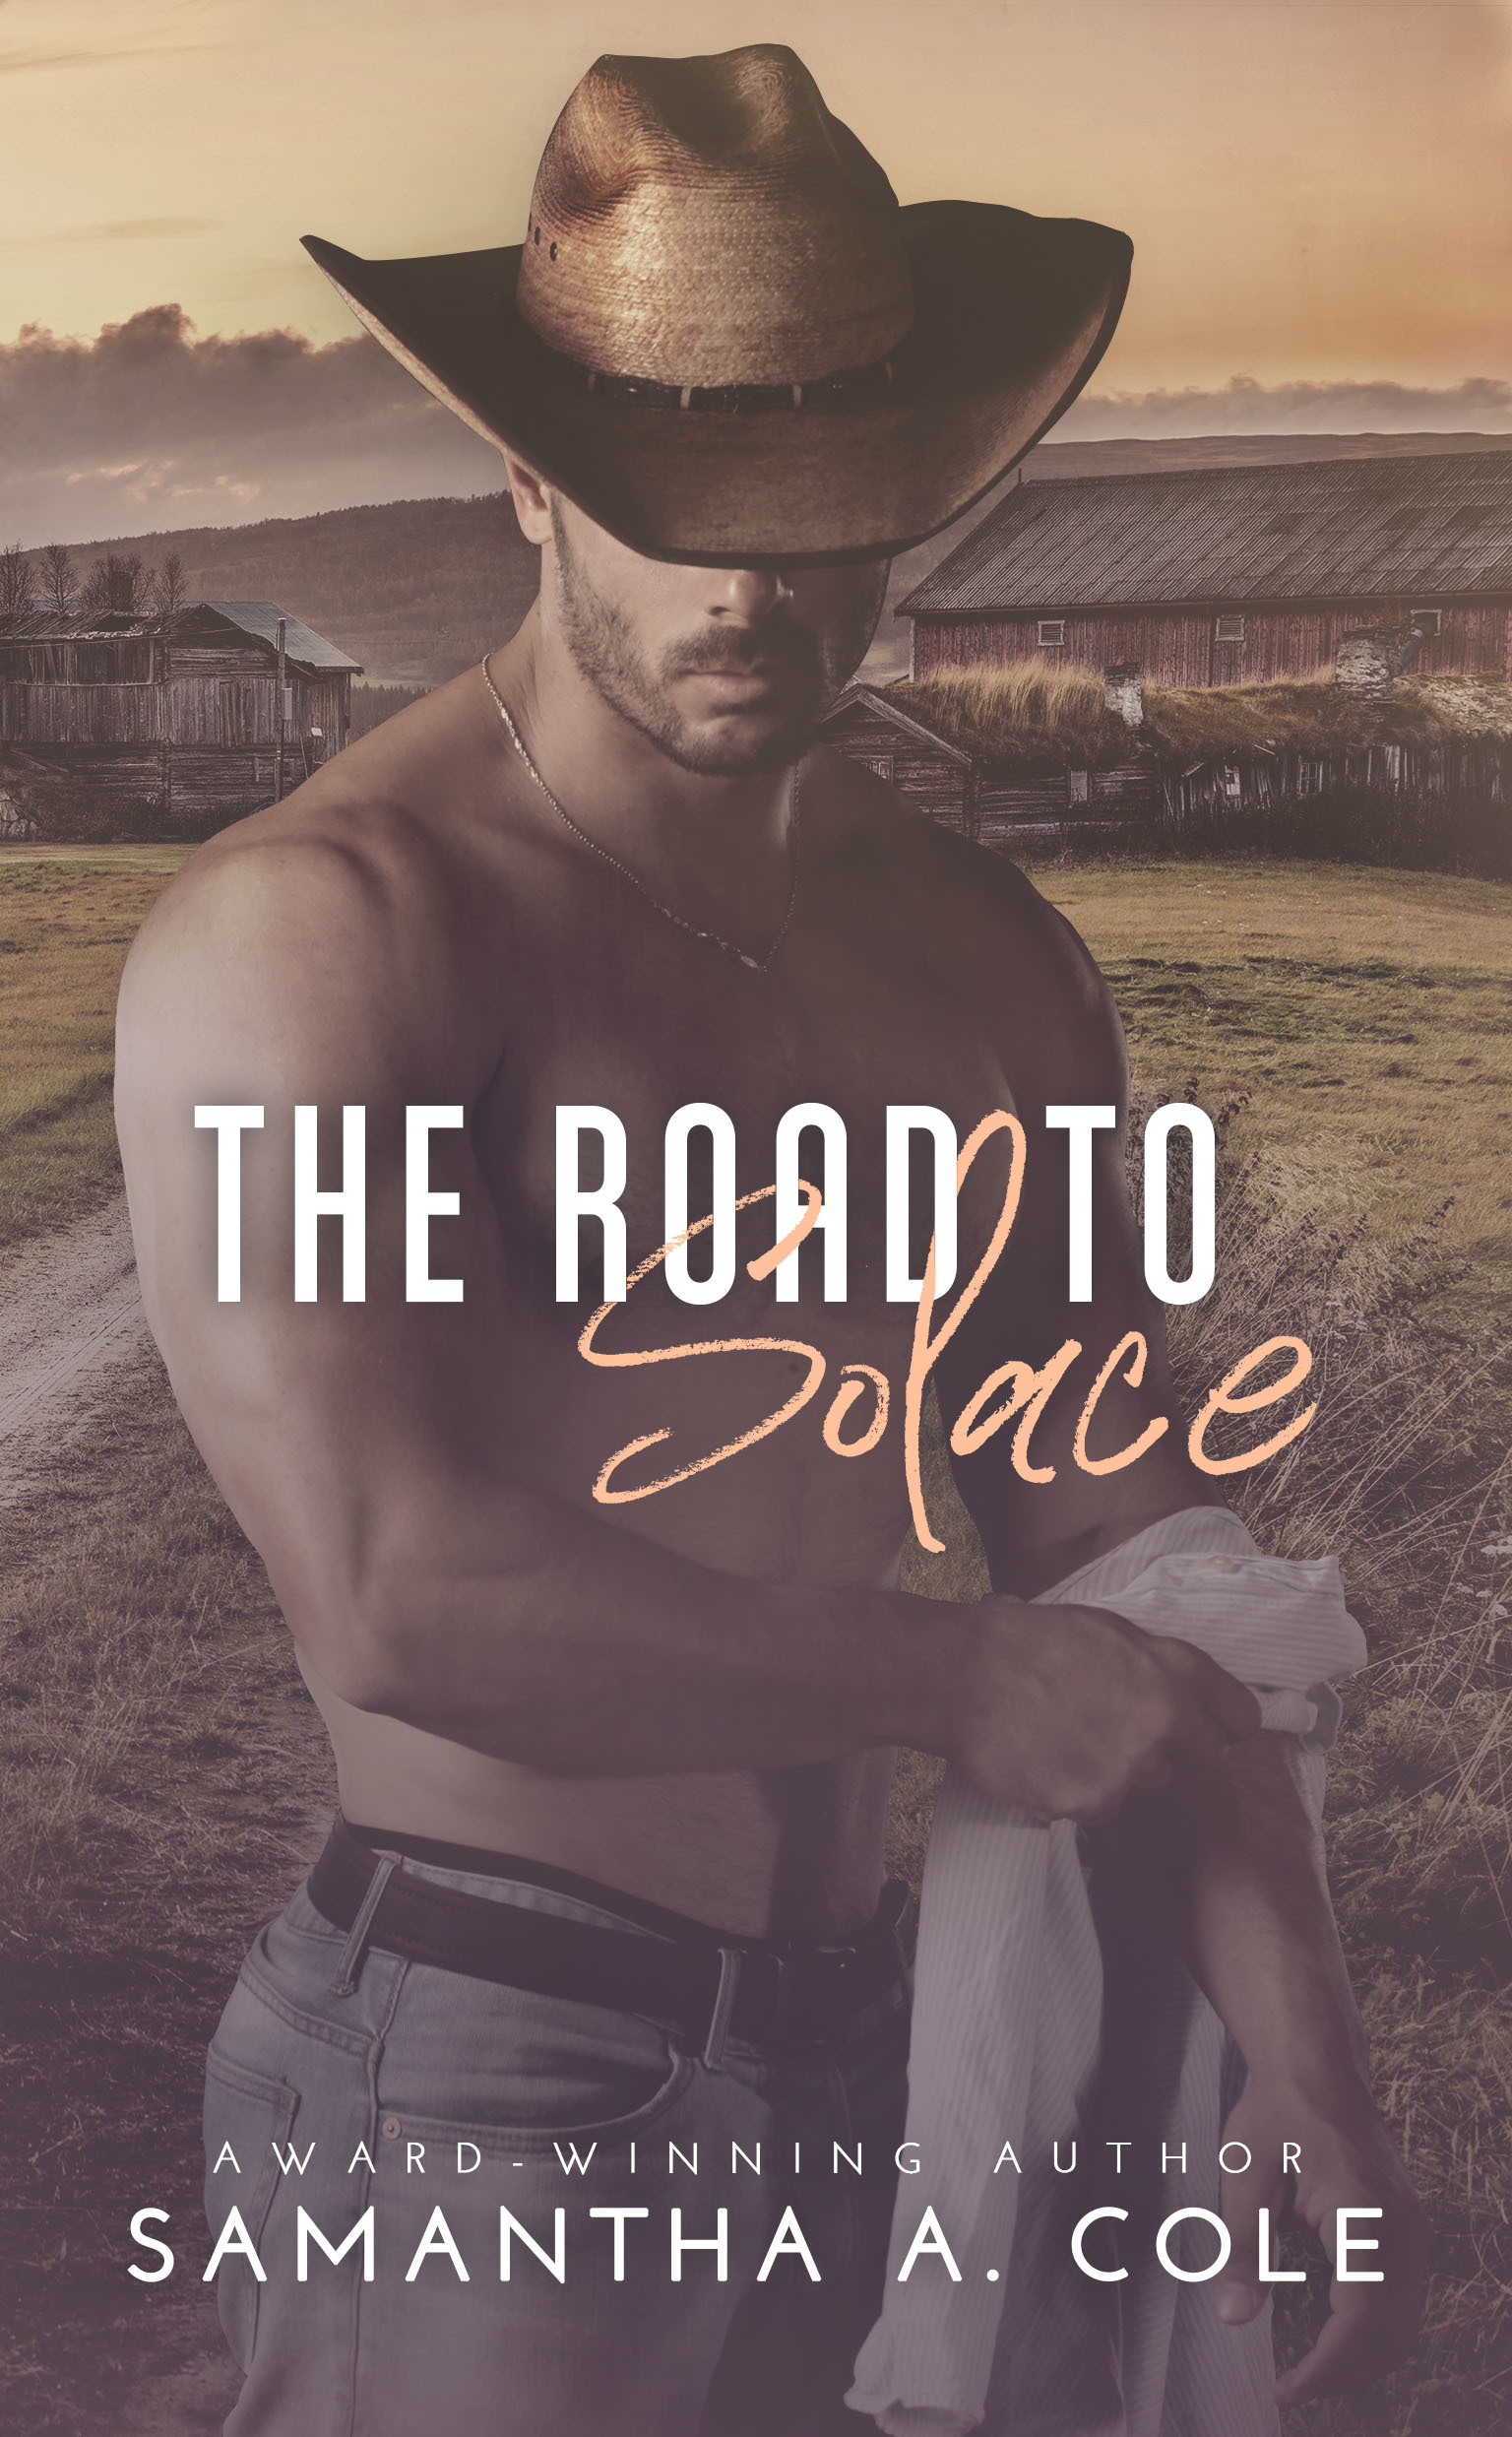 The Road to Solace